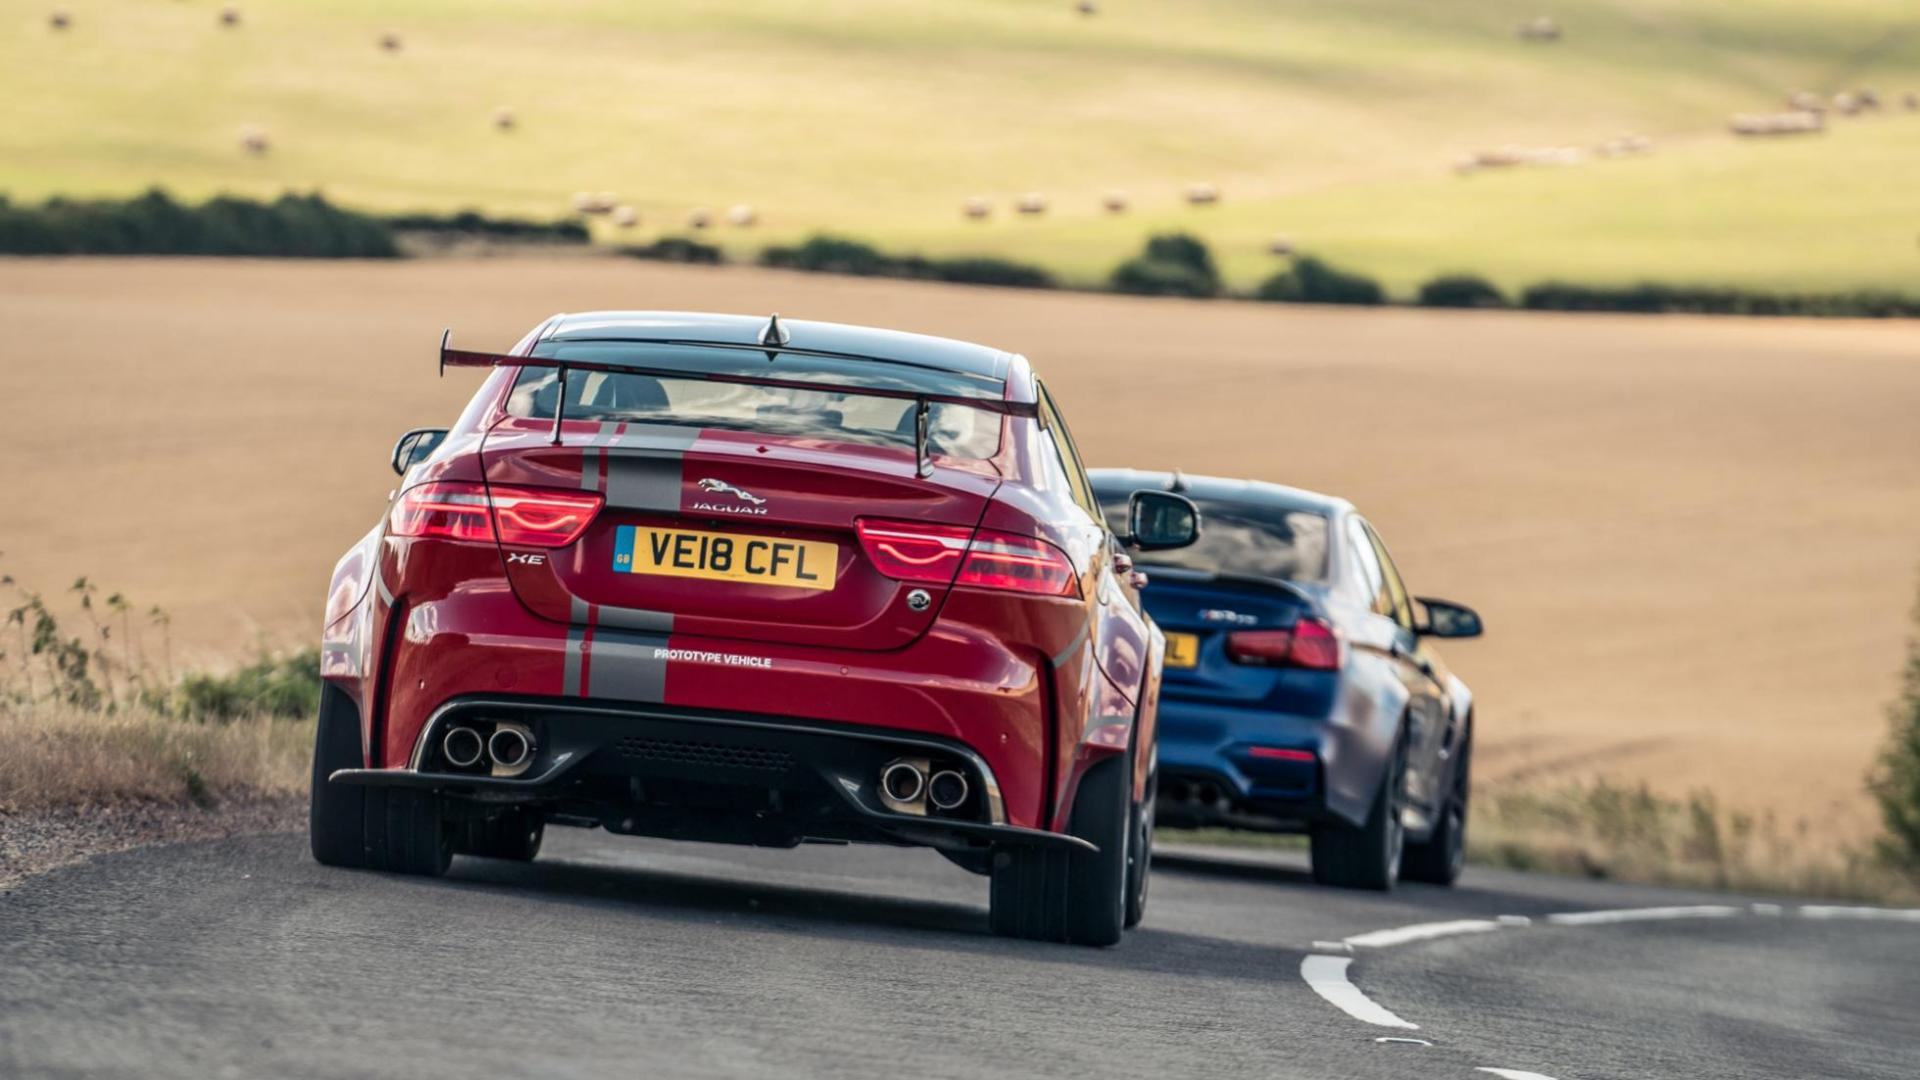 Jaguar XE SV Project 8 vs BMW M3 CS